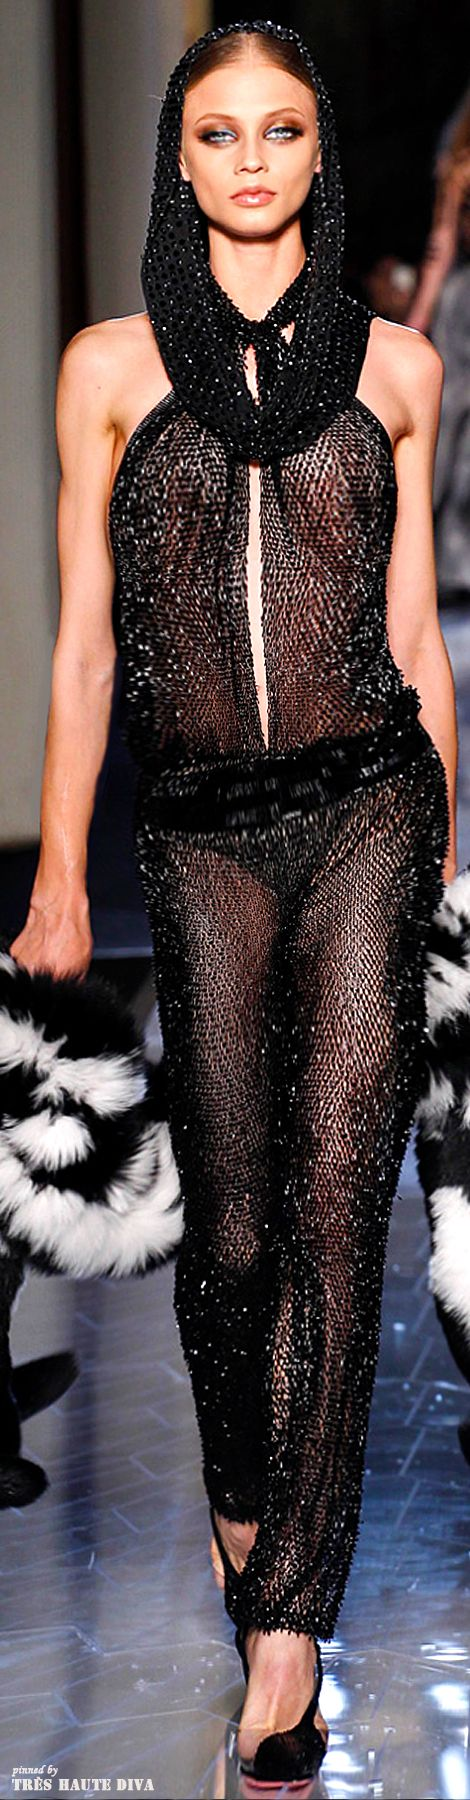 Spring 2014 Atelier Versace http://www.vogue.com/fashion-week/spring-2014-couture/versace/runway/#